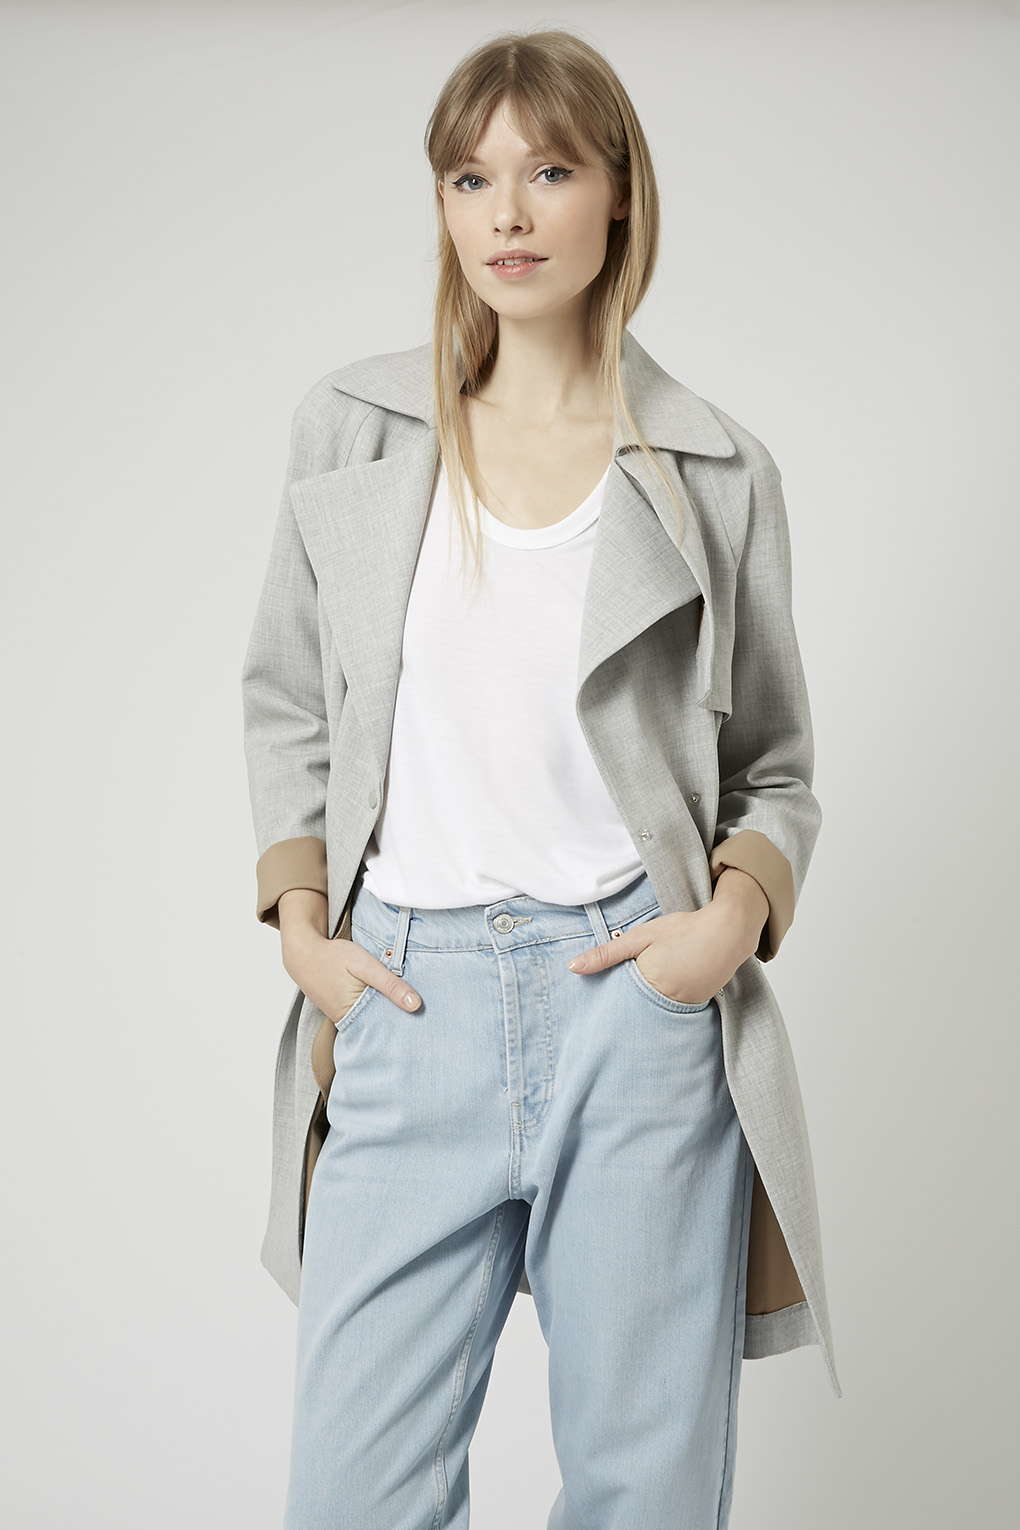 Lyst - Topshop Soft Belted Trench Coat in Gray